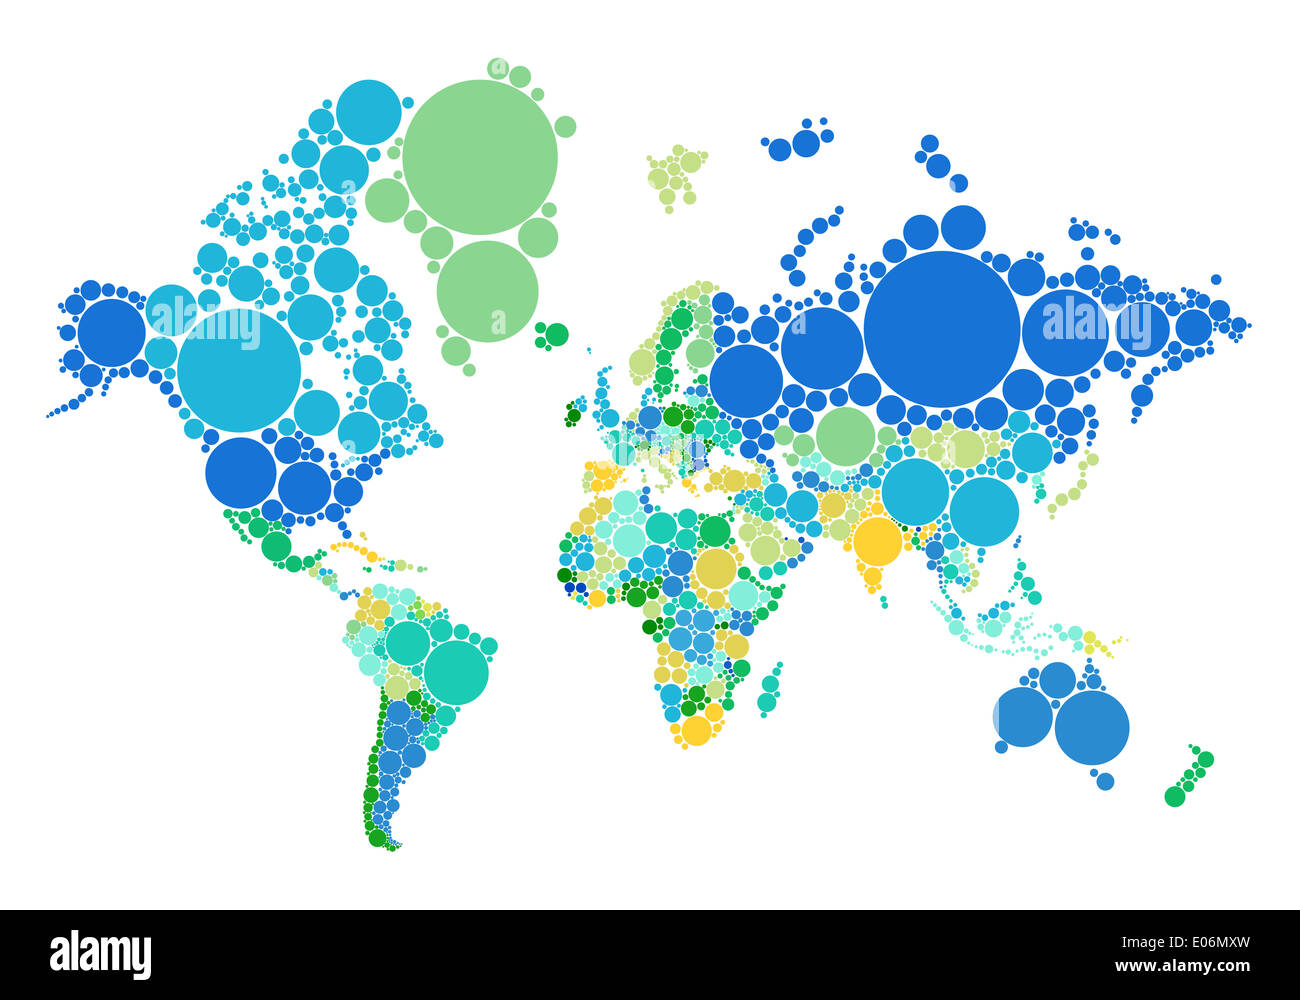 Political dot world map with countries illustration map source political dot world map with countries illustration map source nasa public domain gumiabroncs Images